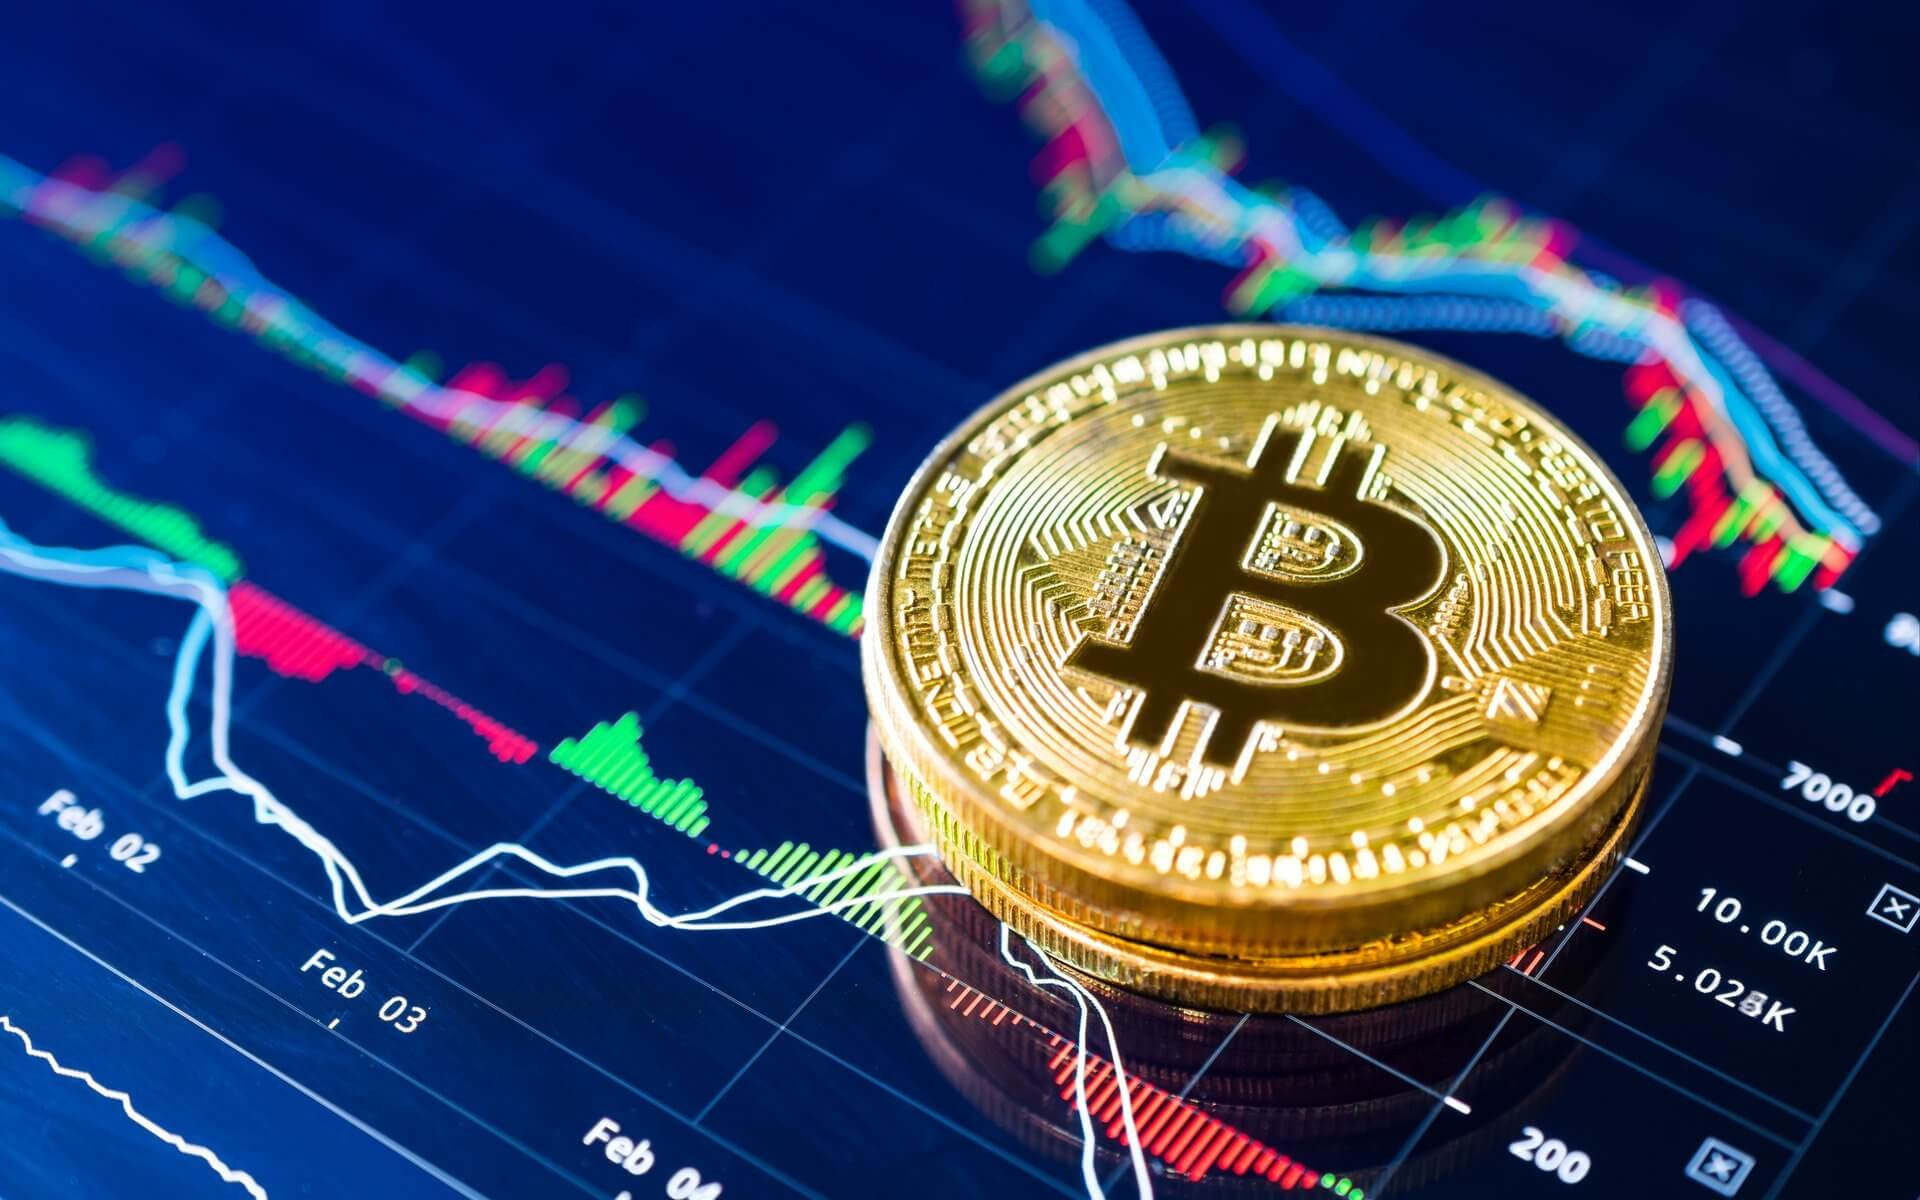 Bitcoin- More to the Story than What Meets the Eye